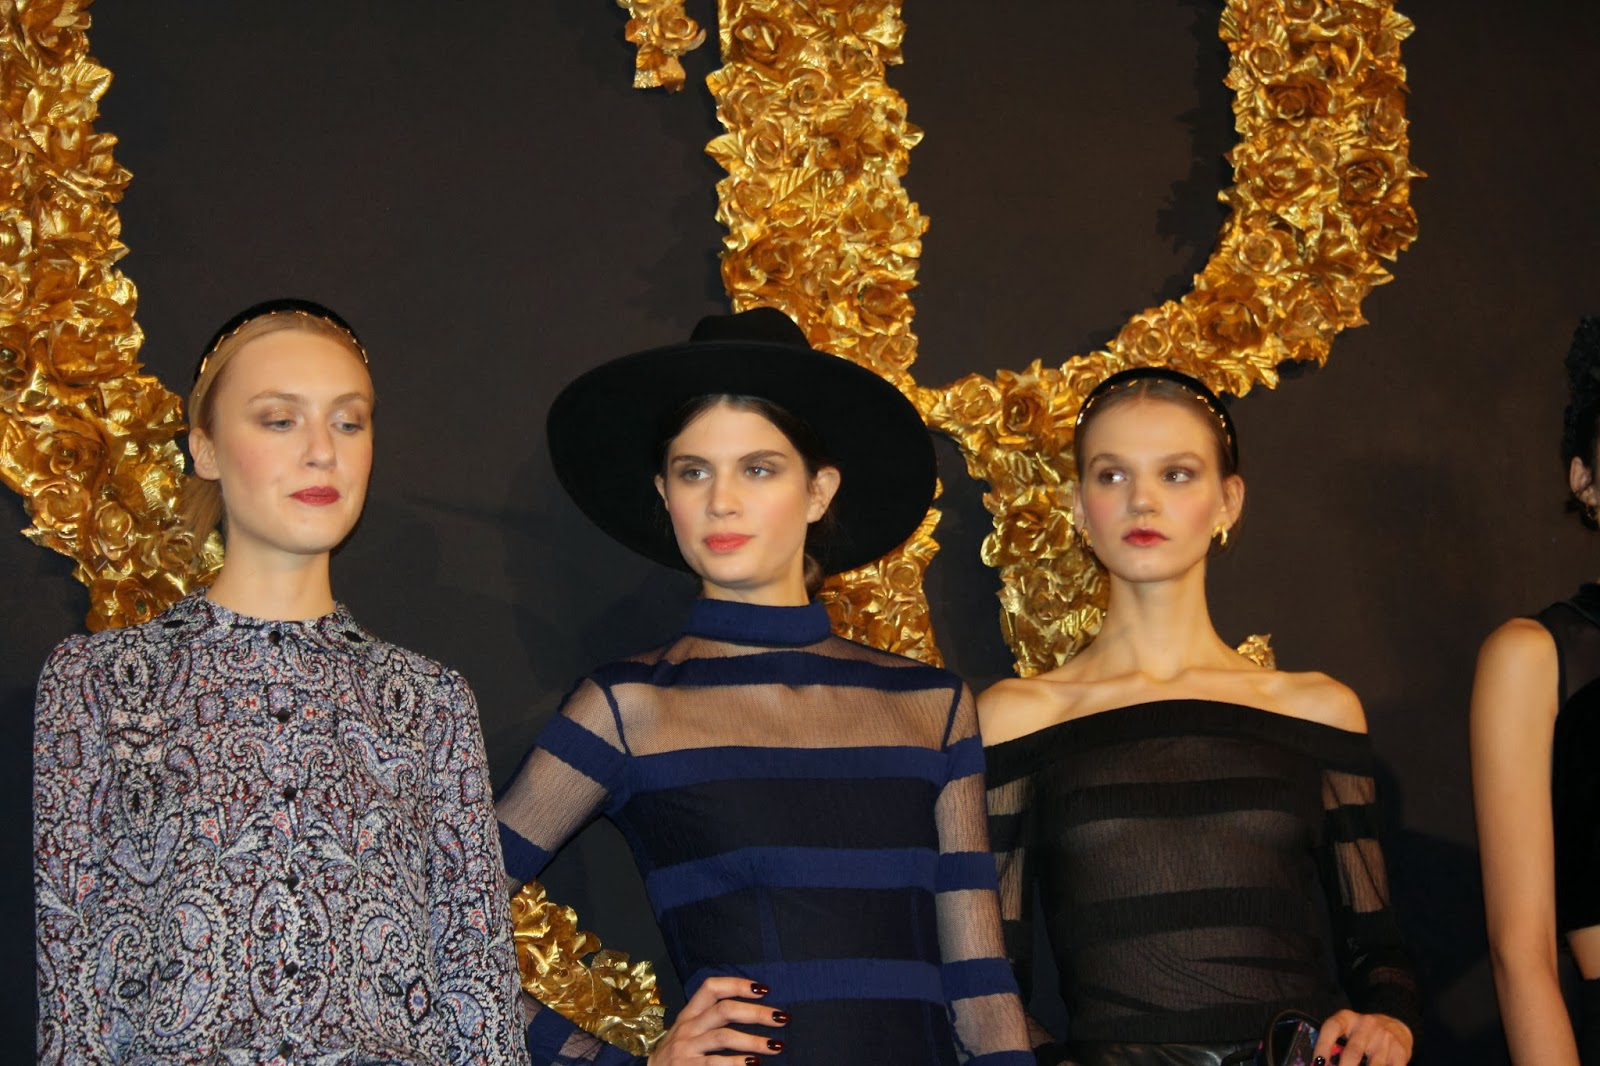 Inspection Report: Charlotte Ronson Fall / Winter 2014 Presentation